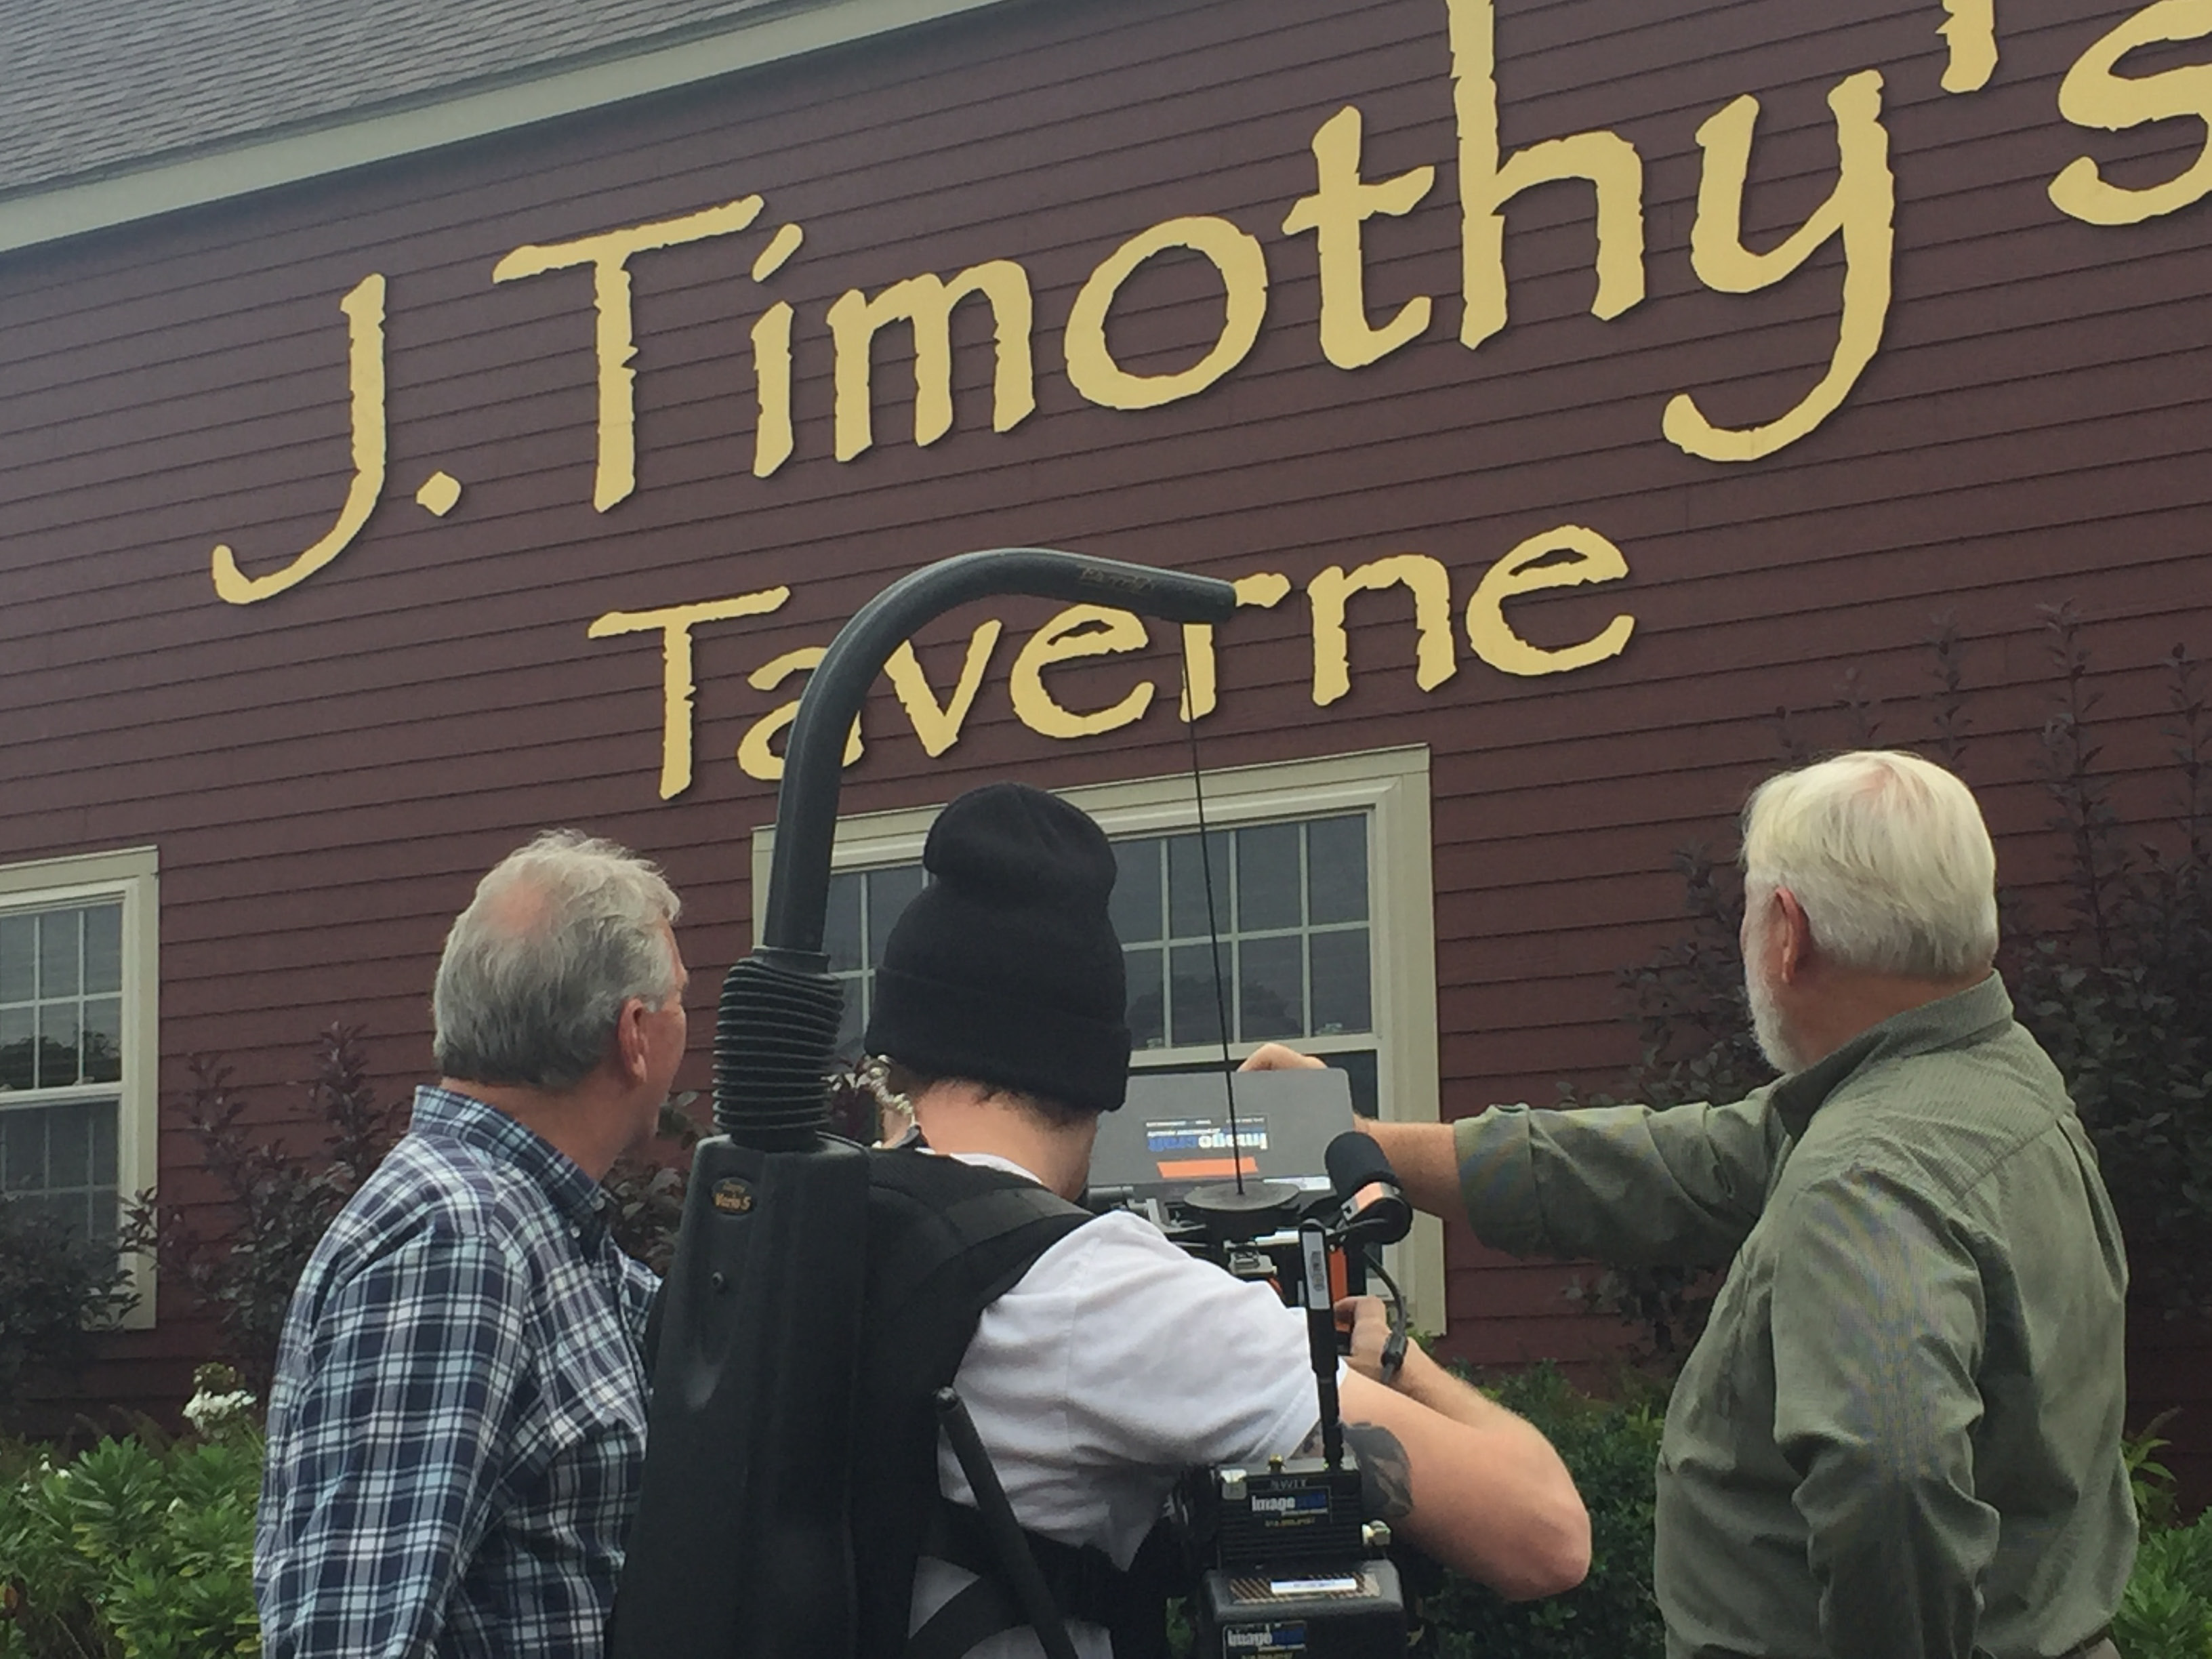 Owners Jim Welch and Tim Adams during filming for the Travel Channel